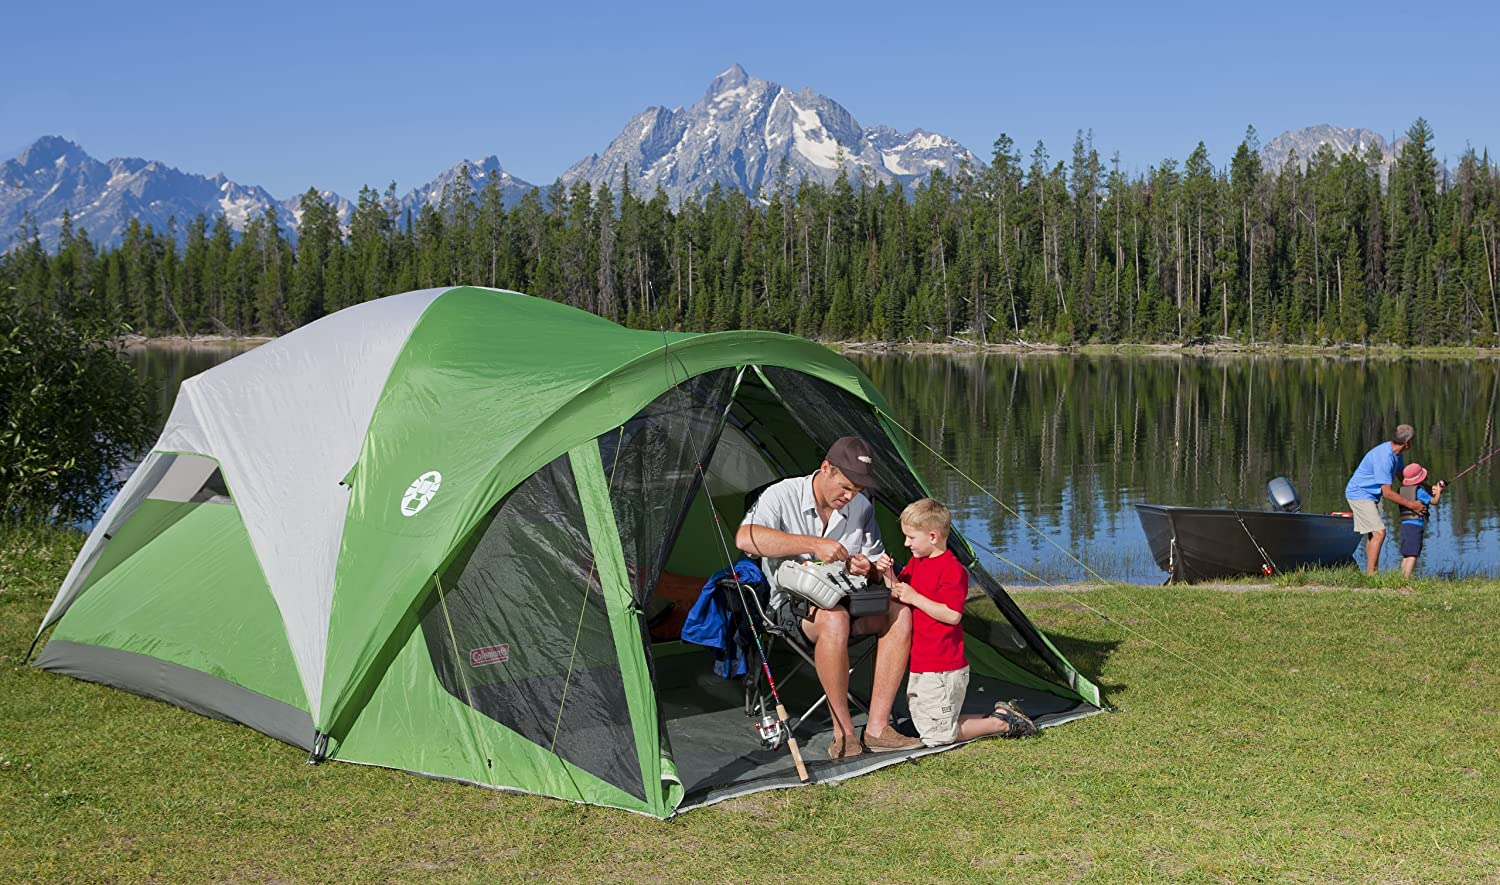 coleman evanston 6 screened tent & BEST 6 PERSON TENT | Camping 6 MAN TENT reviews u0026 SALE